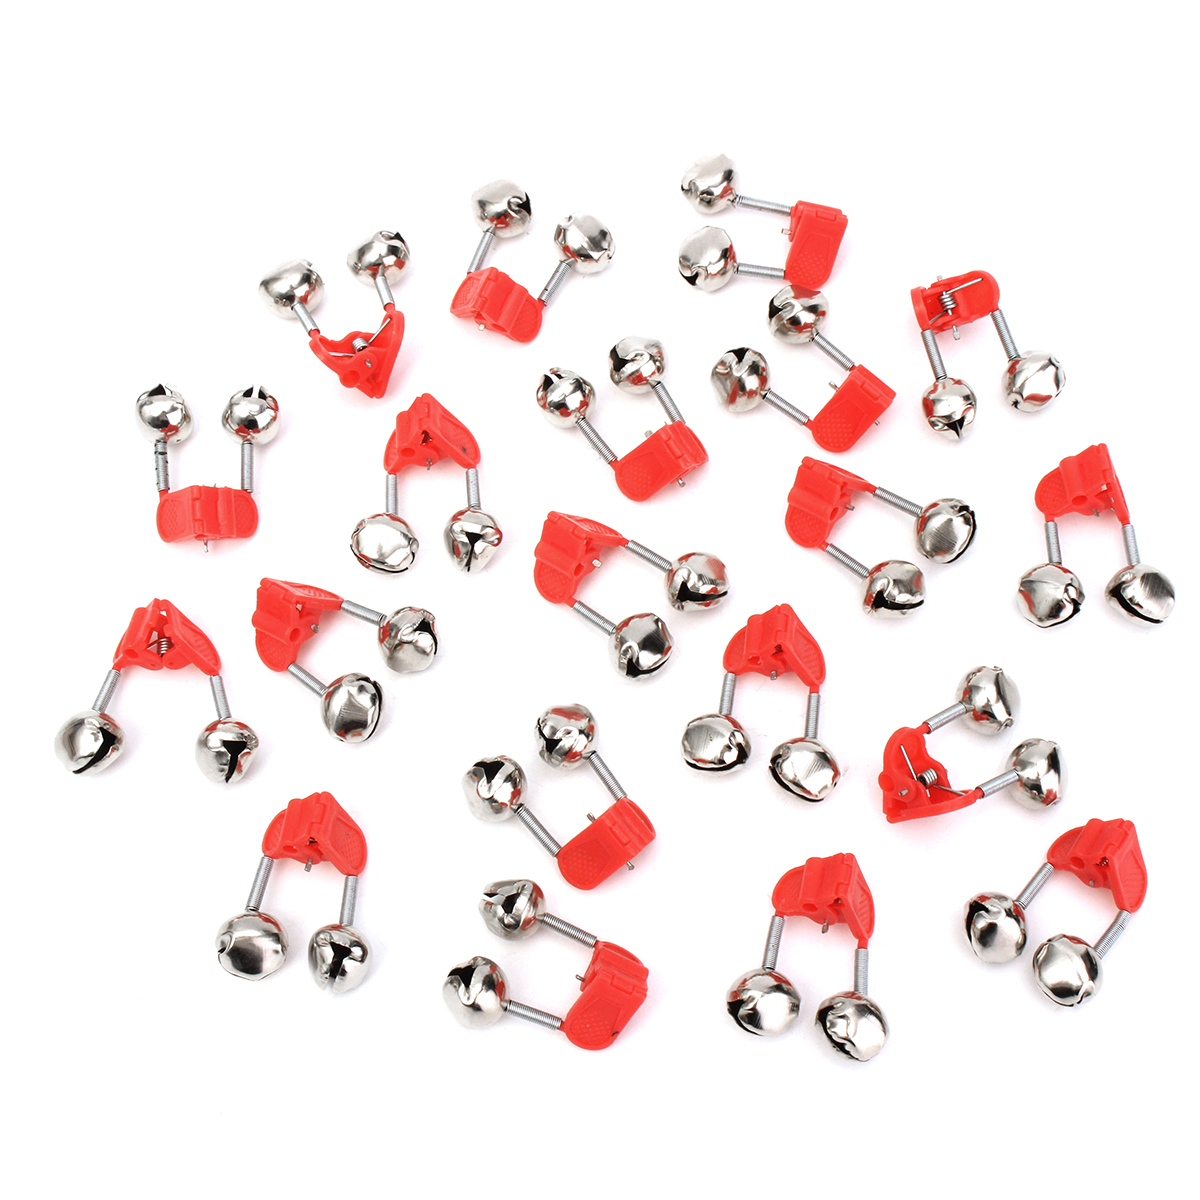 20pcs Red Night Fishing Rod Clamp Tip Clip Metal Bell + Plastic Clip Ring Fish Bait Alarm Bells